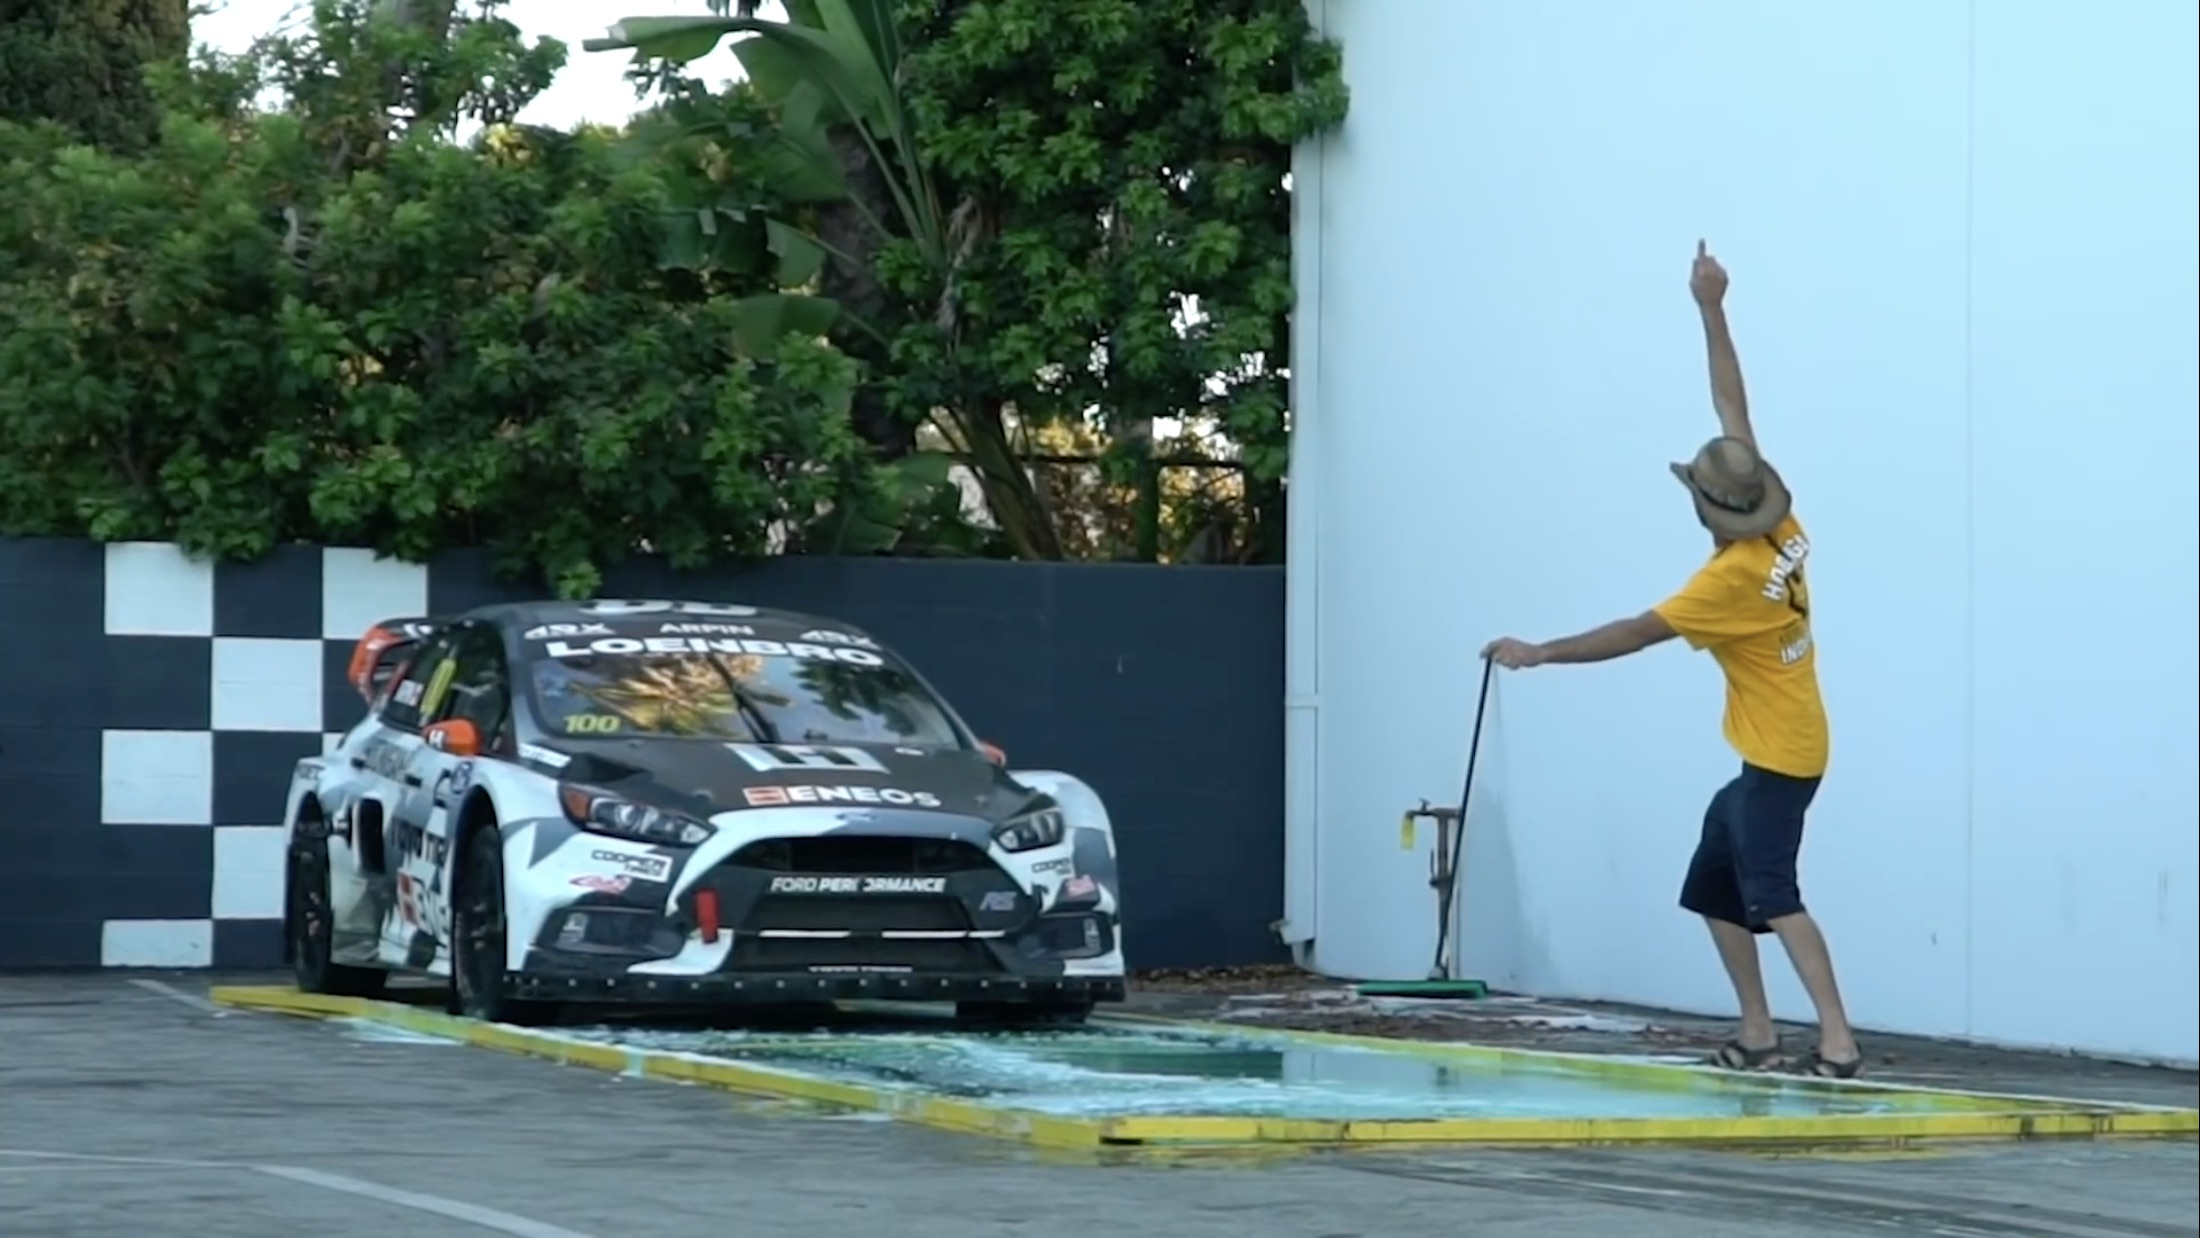 Will It Grip? The Hoonigans Try To Launch A Rally Car On A Ton Of Dish Soap!